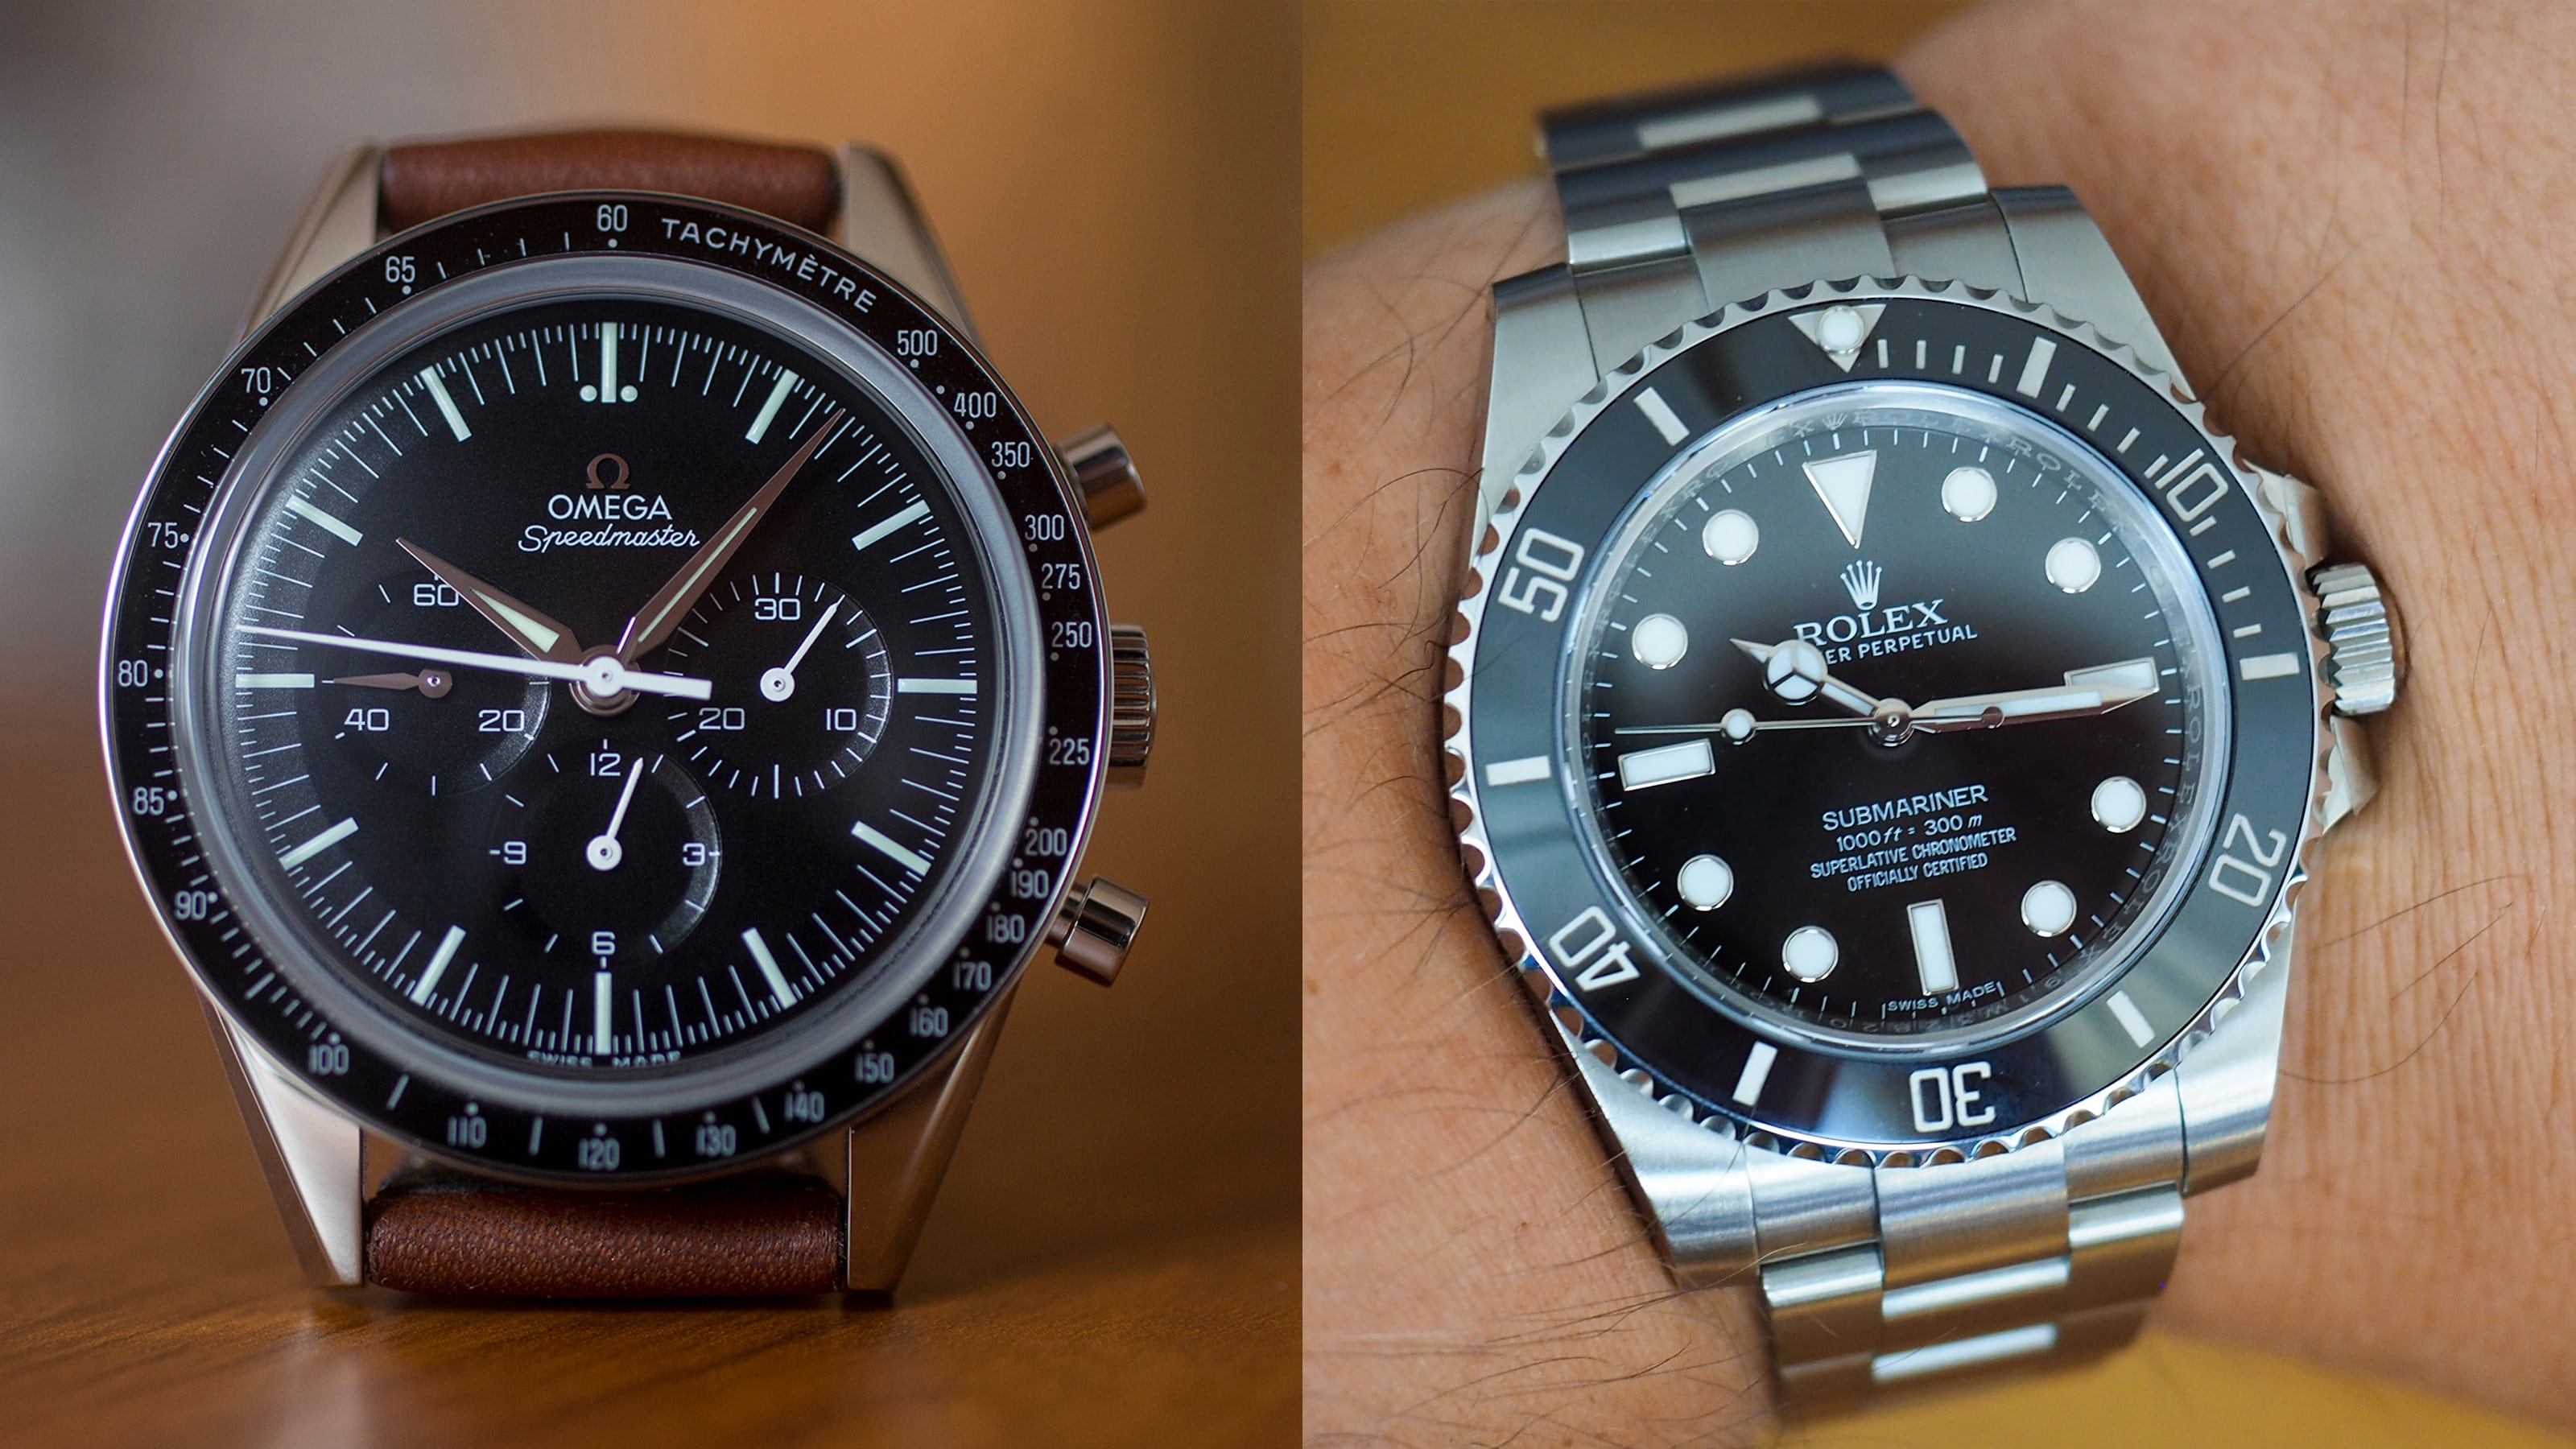 31fec002e In-Depth: Chronograph Vs. Dive Watch: Which Is More Practical For Real Life  Timing? - HODINKEE